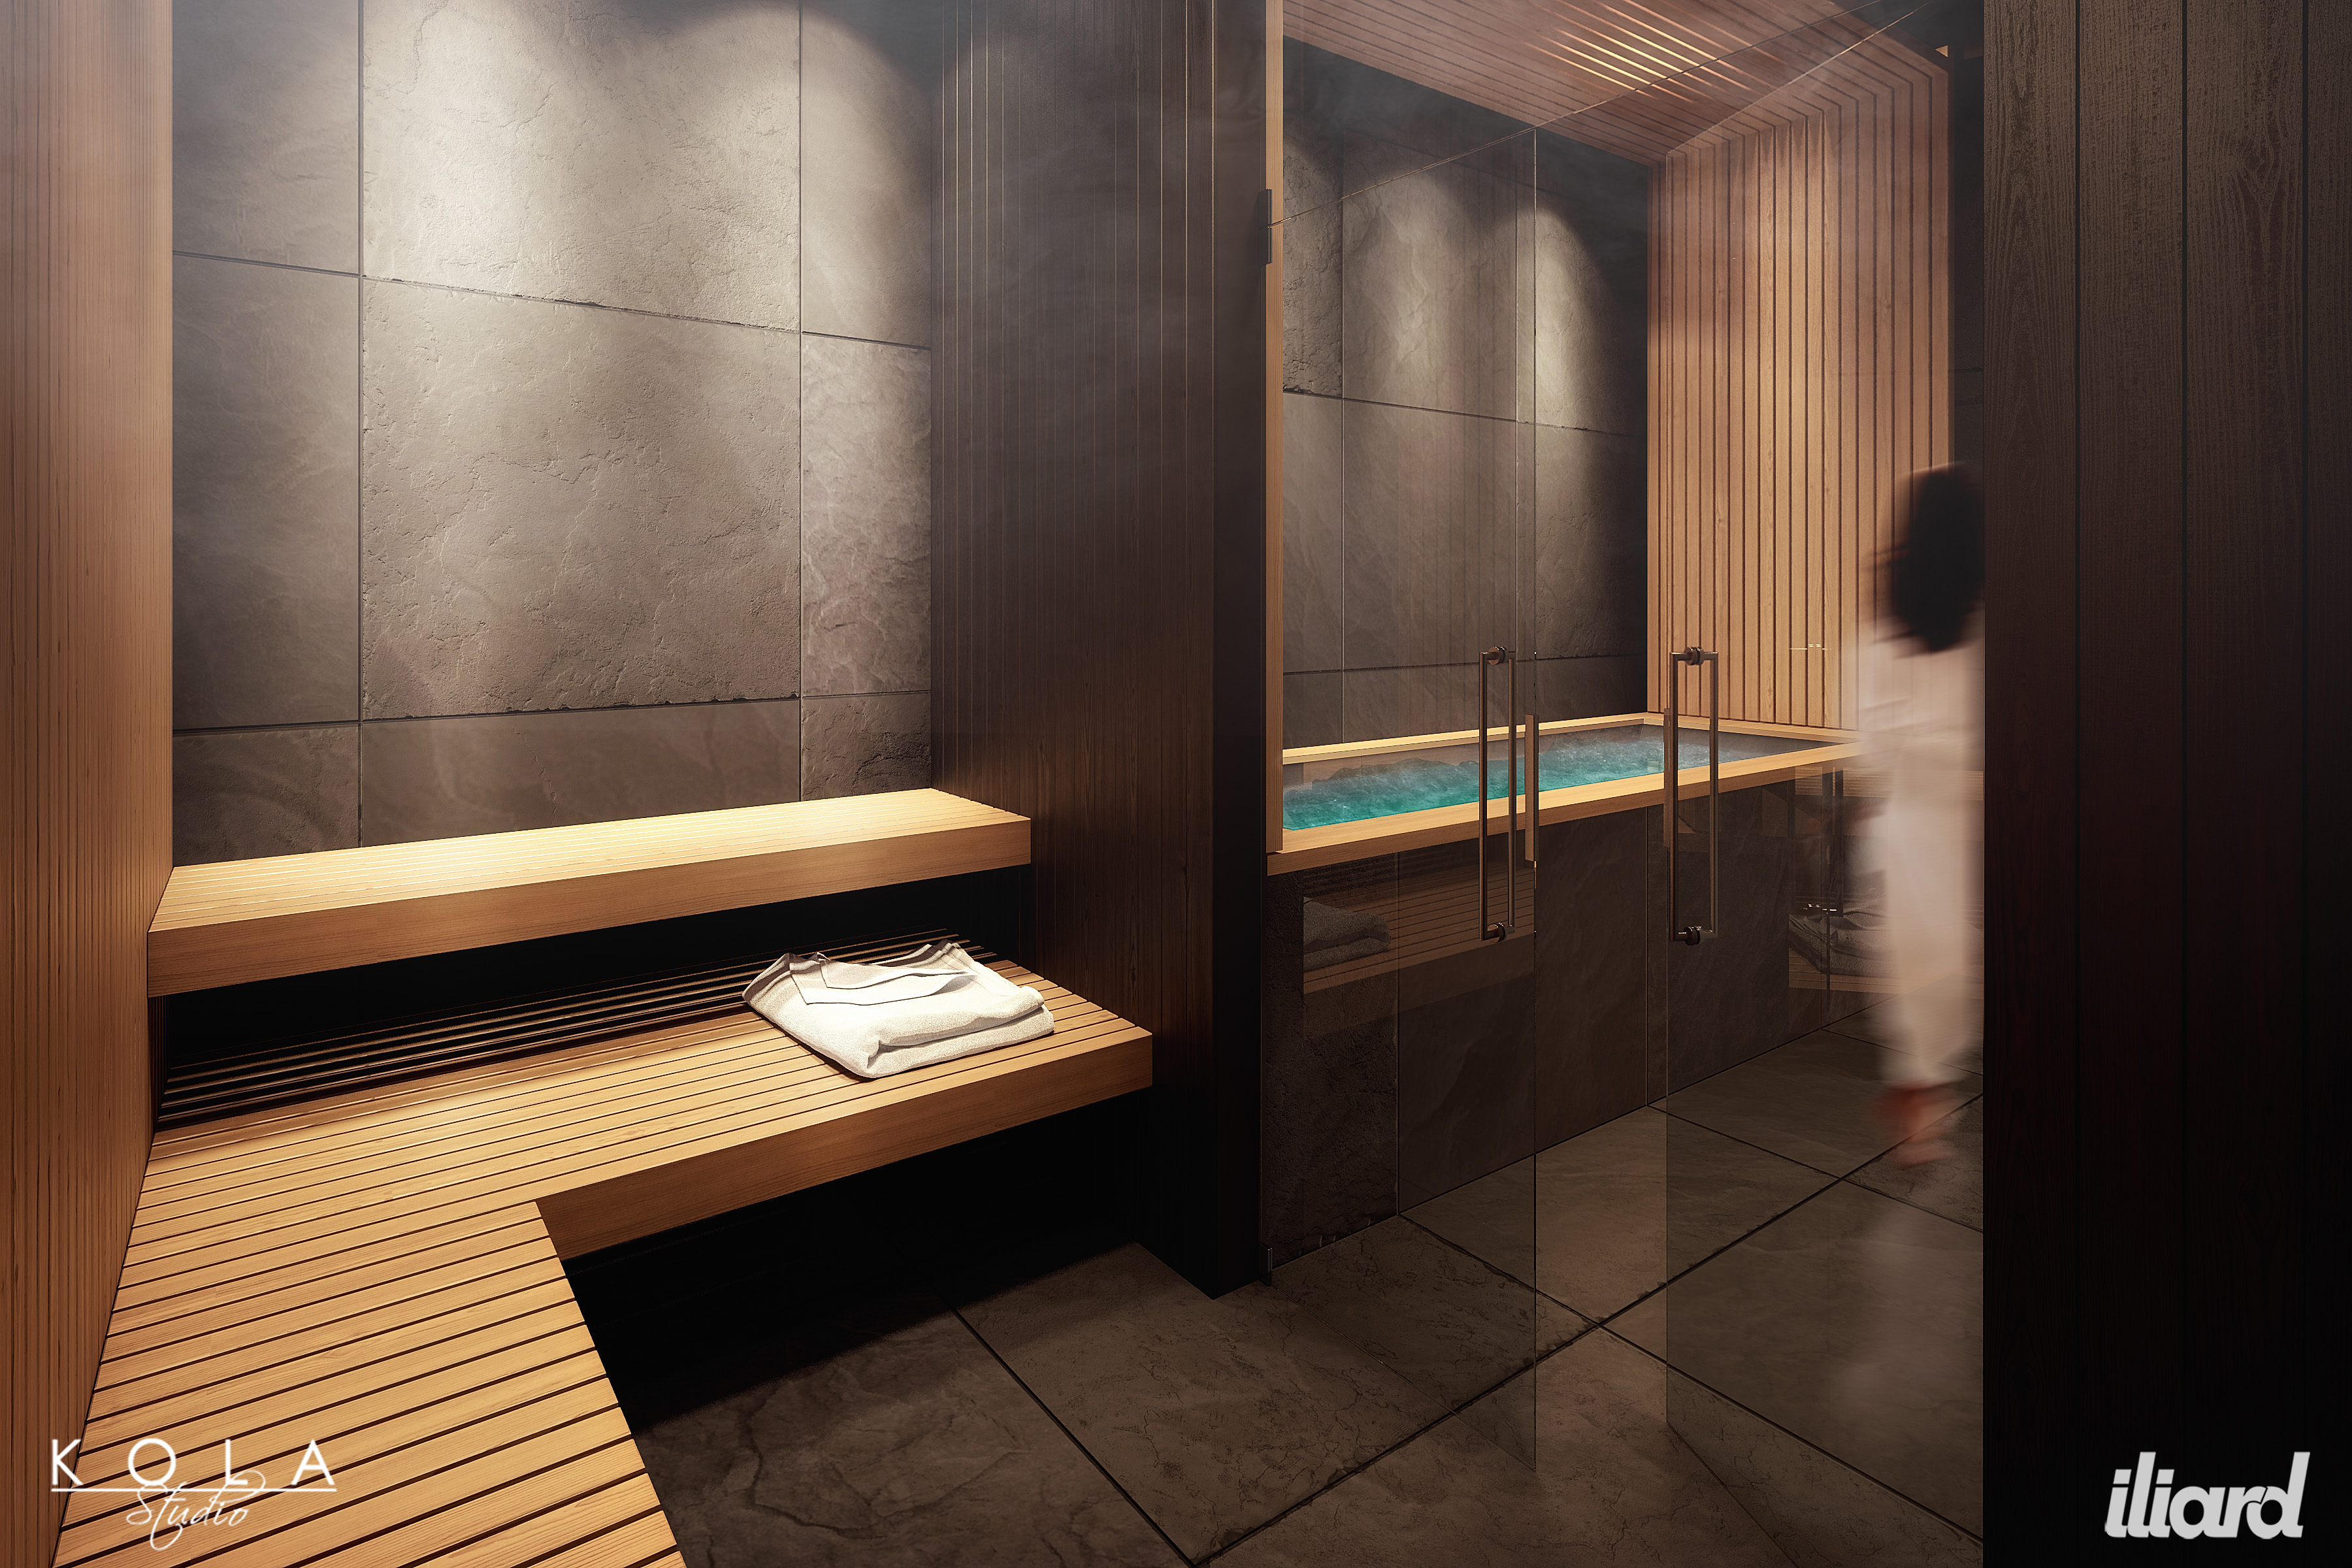 spa & fitness zone in a hotel | freelancers 3d